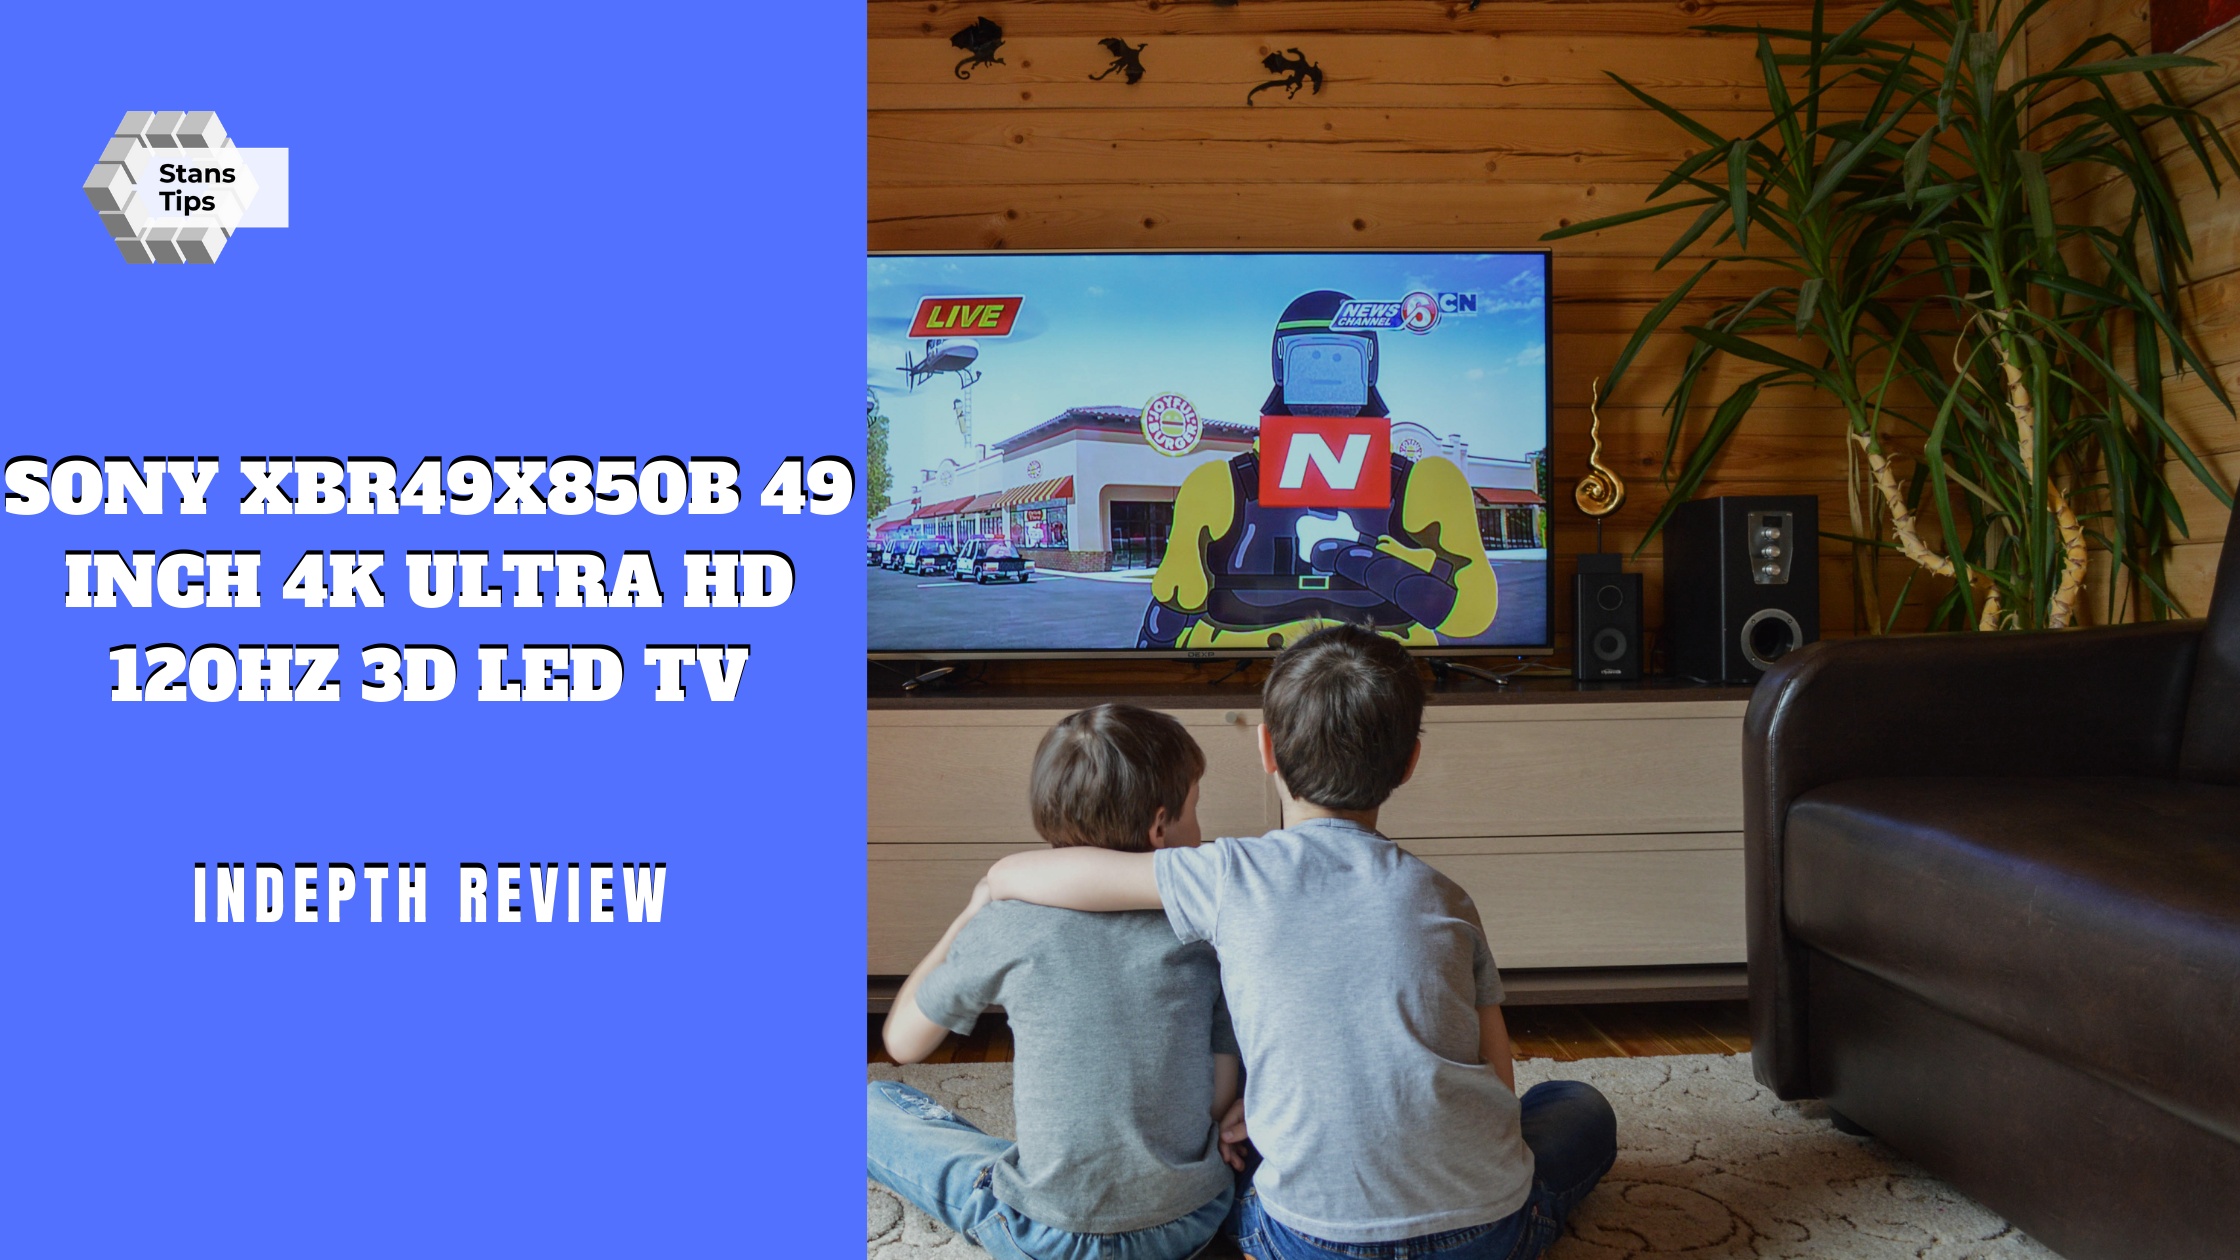 Sony xbr49x850b 49 inch 4k ultra hd 120hz 3d led tv review